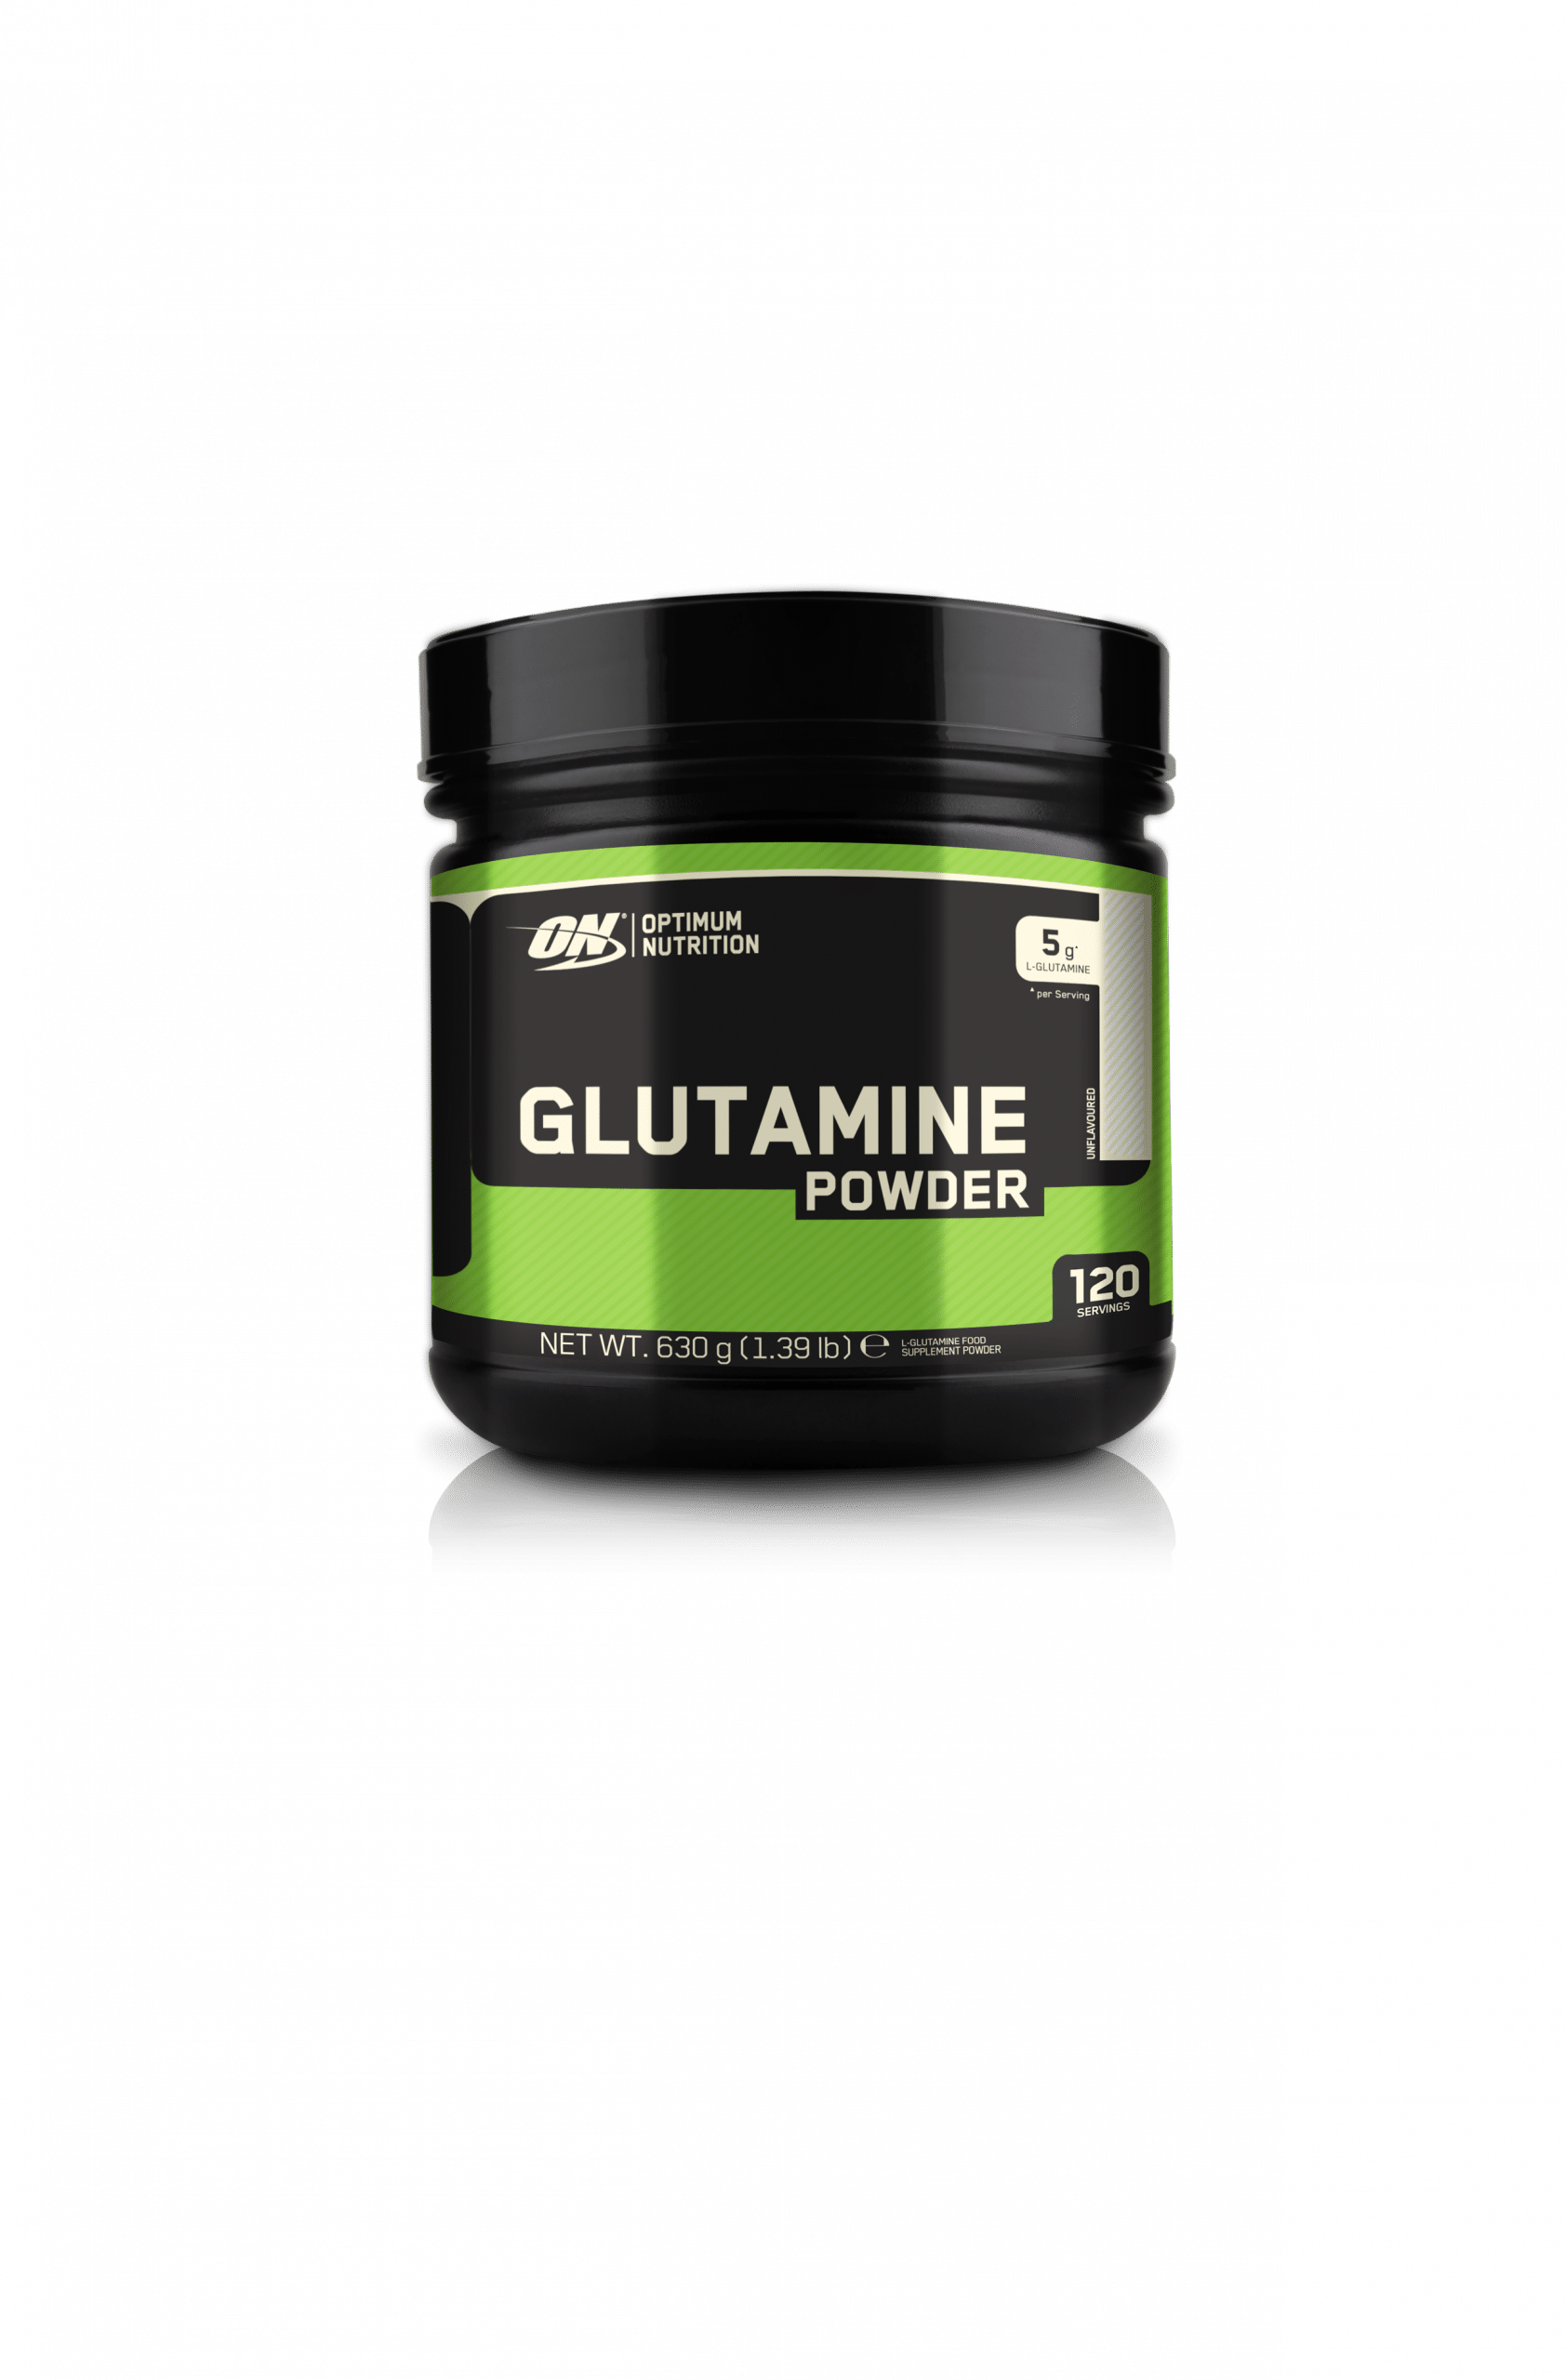 EU_GlutaminePowder_630g